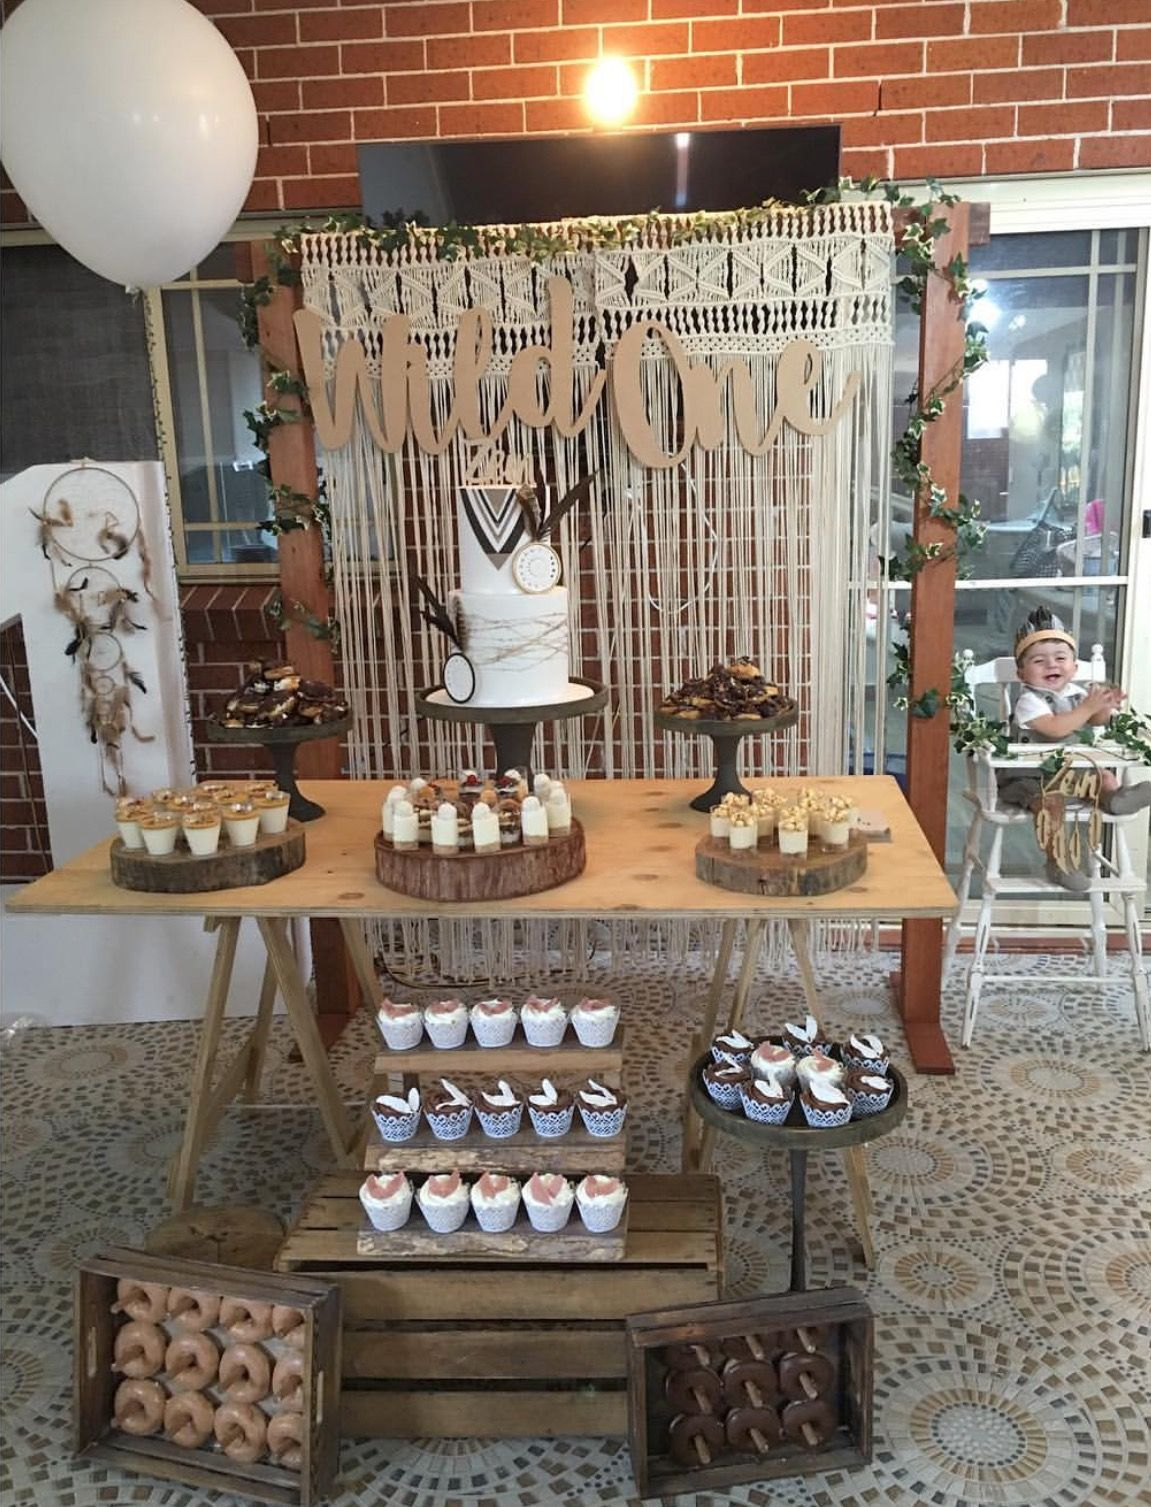 Diy Backdrop Stand For Dessert Table Wild One Diy Styling Using All Our Rustic Props Trestle